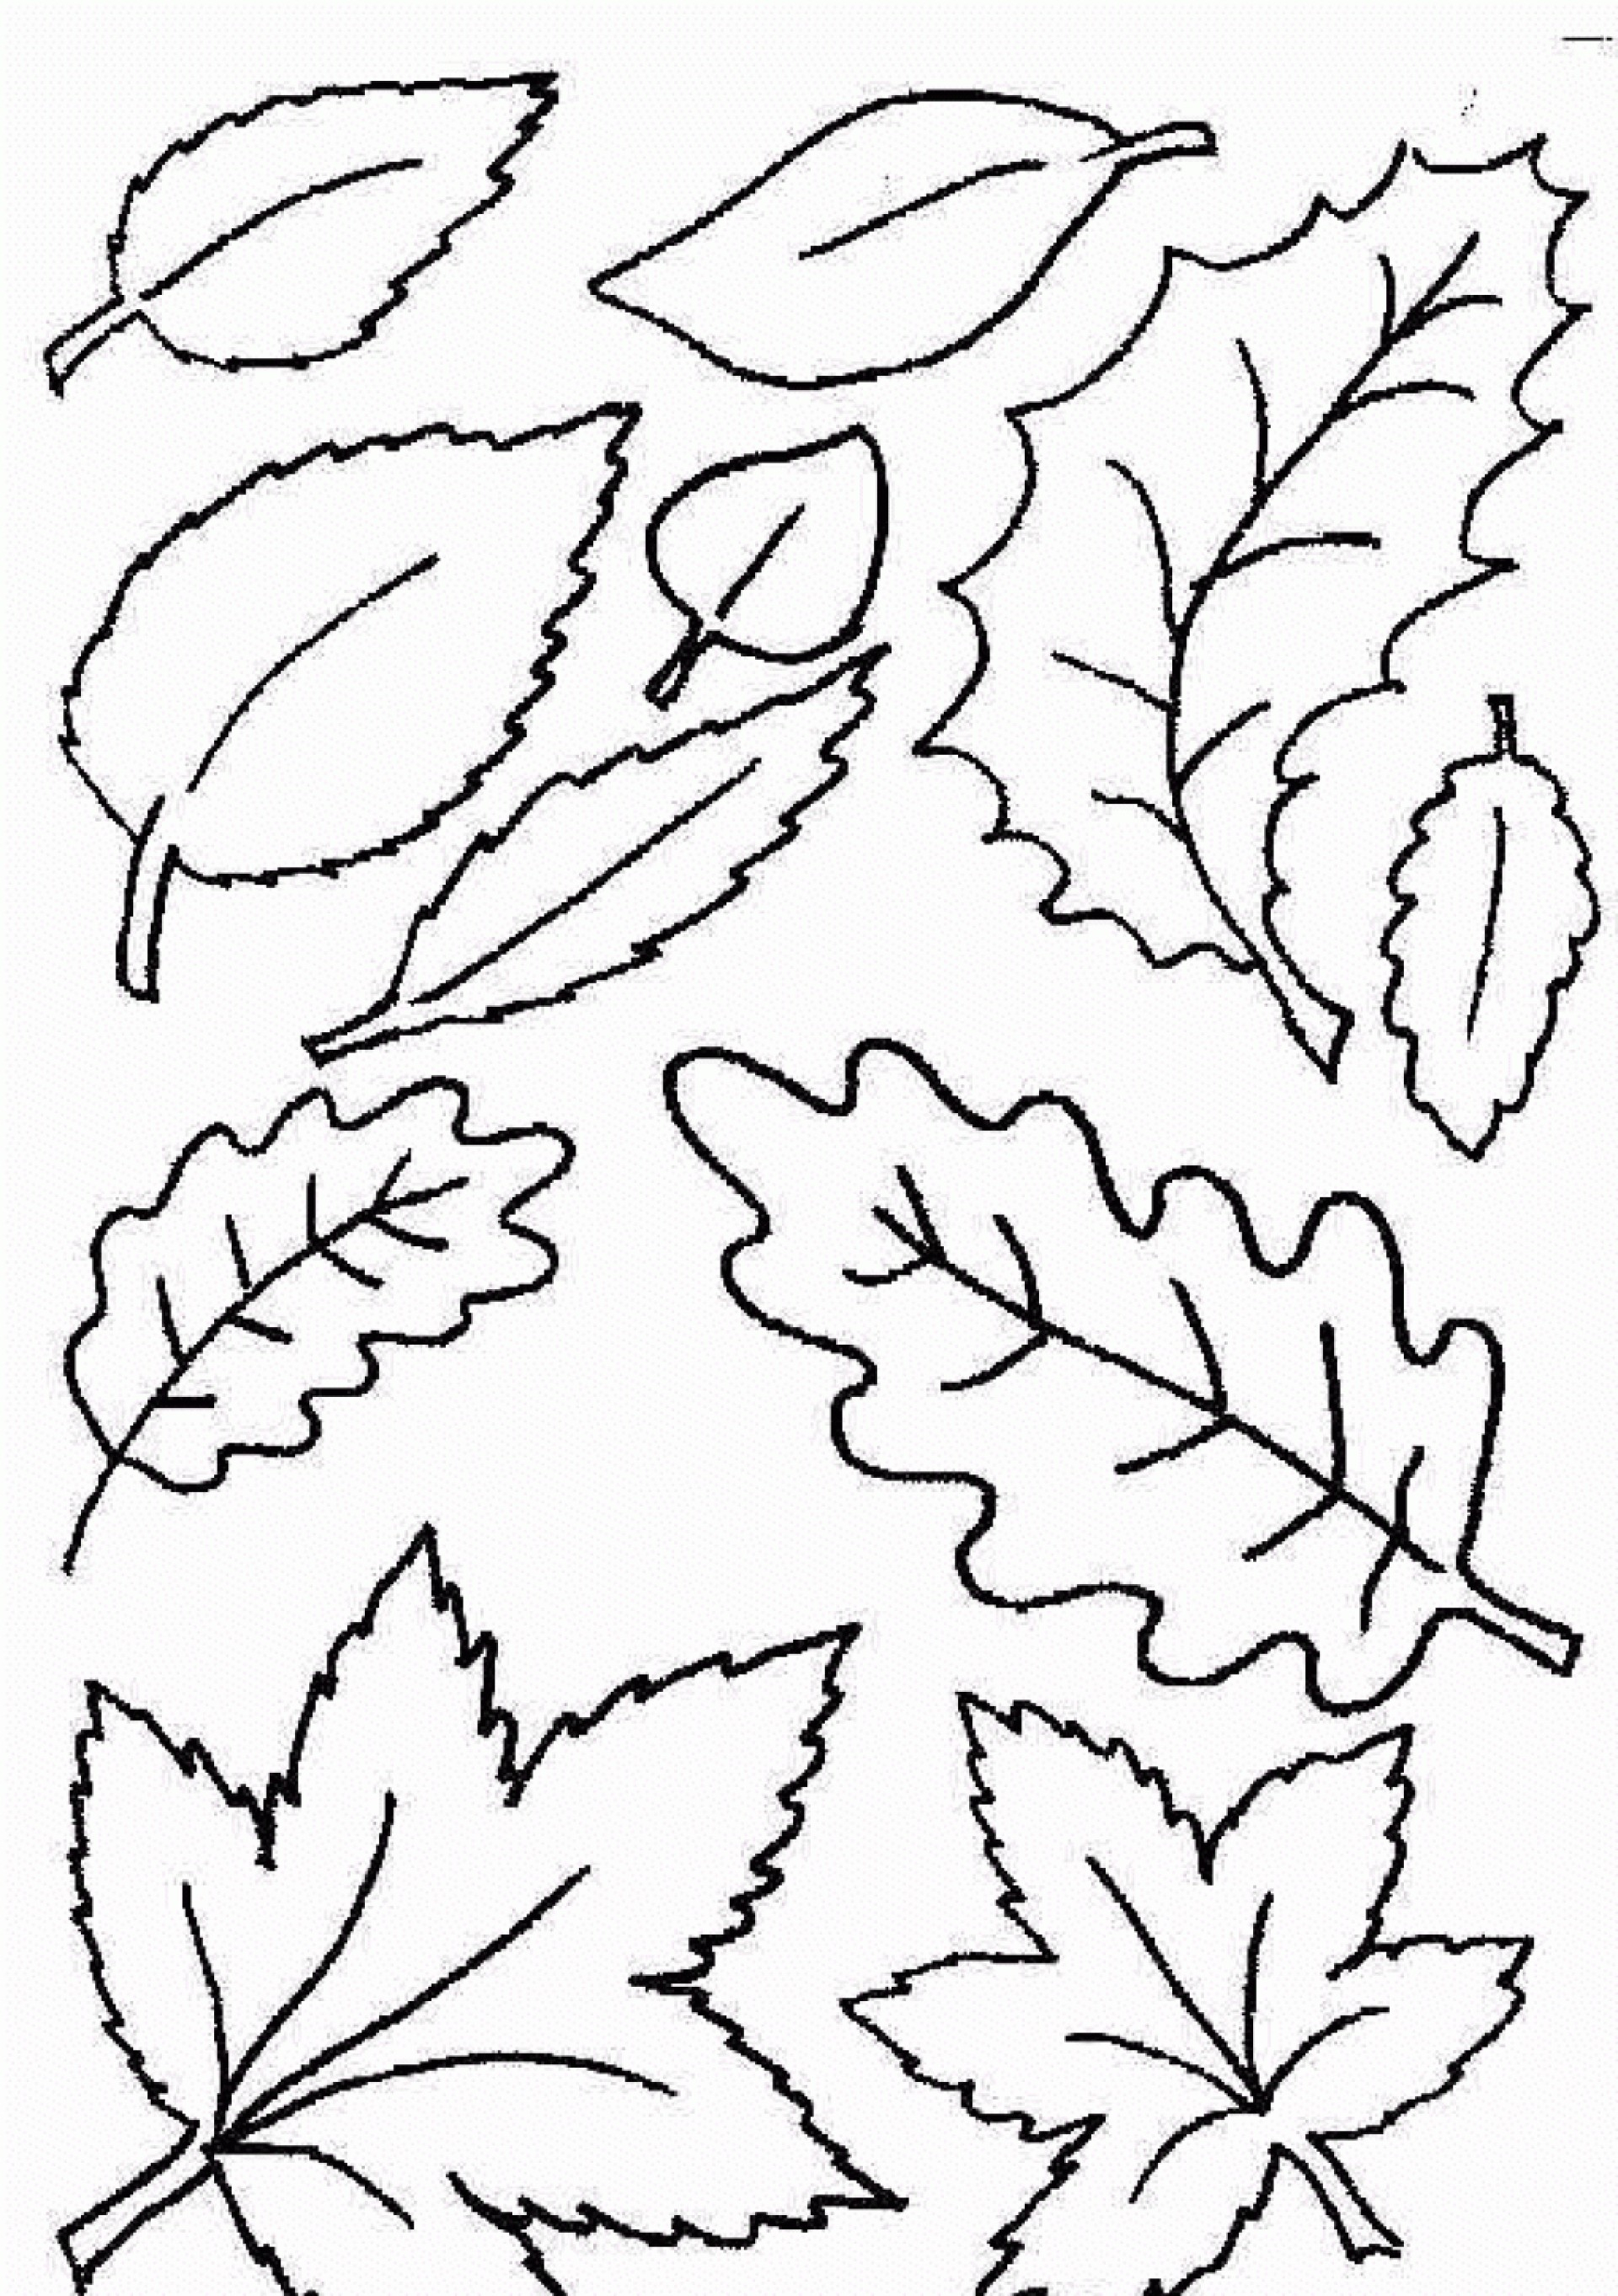 028 Template Ideas Free Printable Leaf Best Fall Leaves Coloring - Free Printable Fall Leaves Coloring Pages